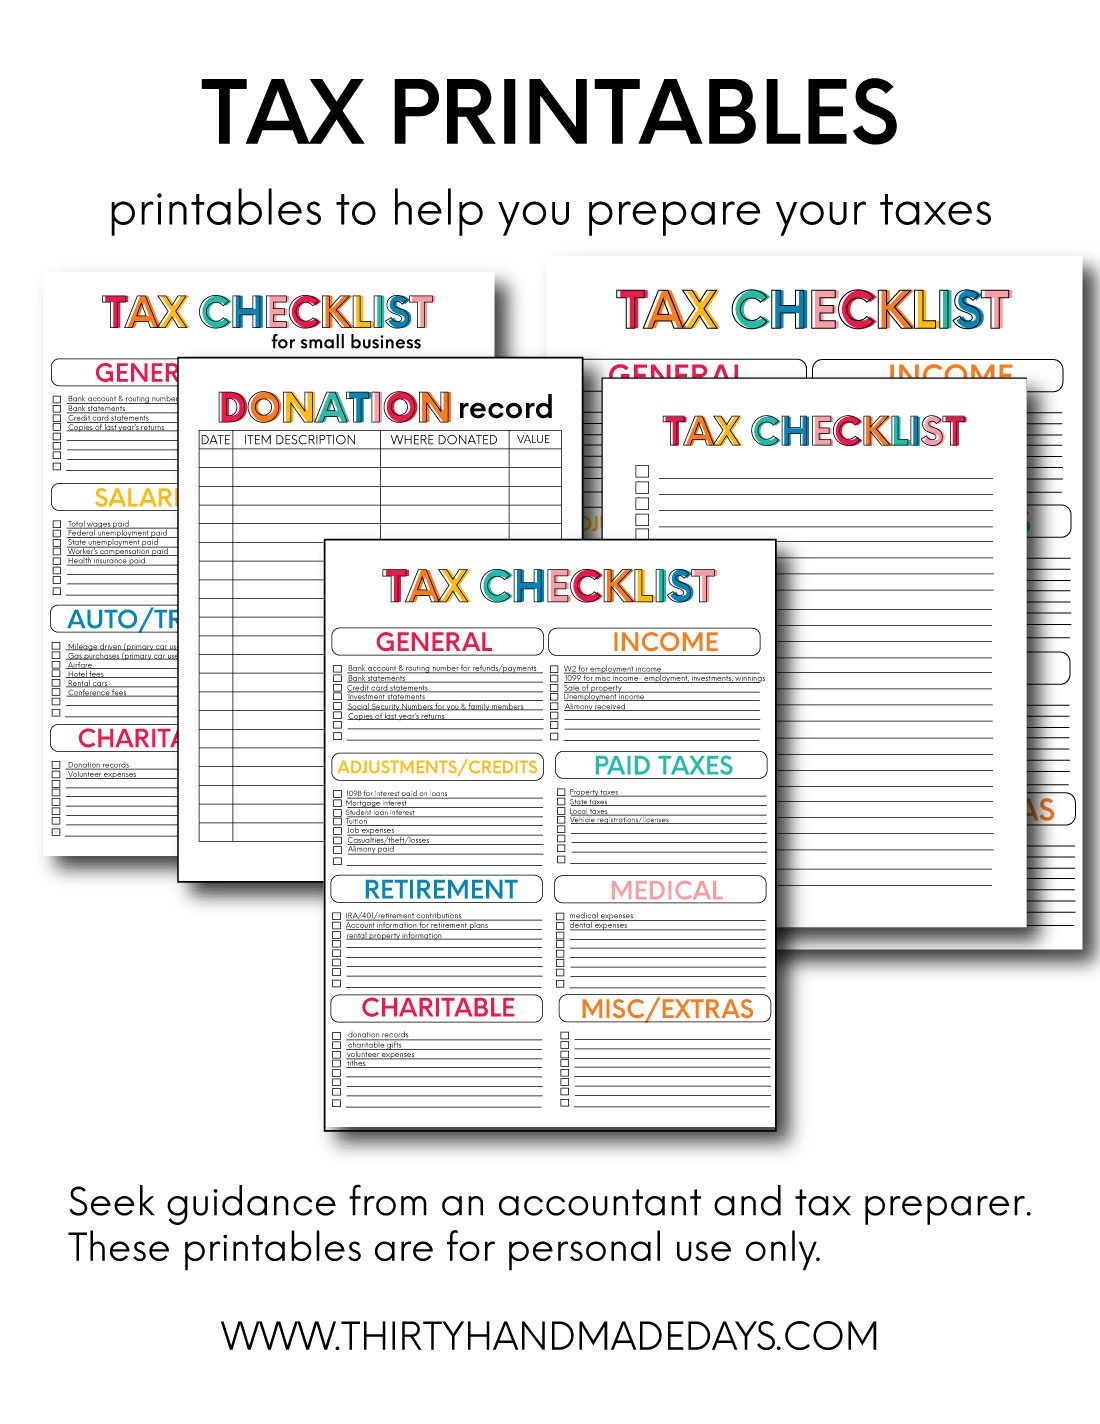 Tax printable forms from www.thirtyhandmadedays.com